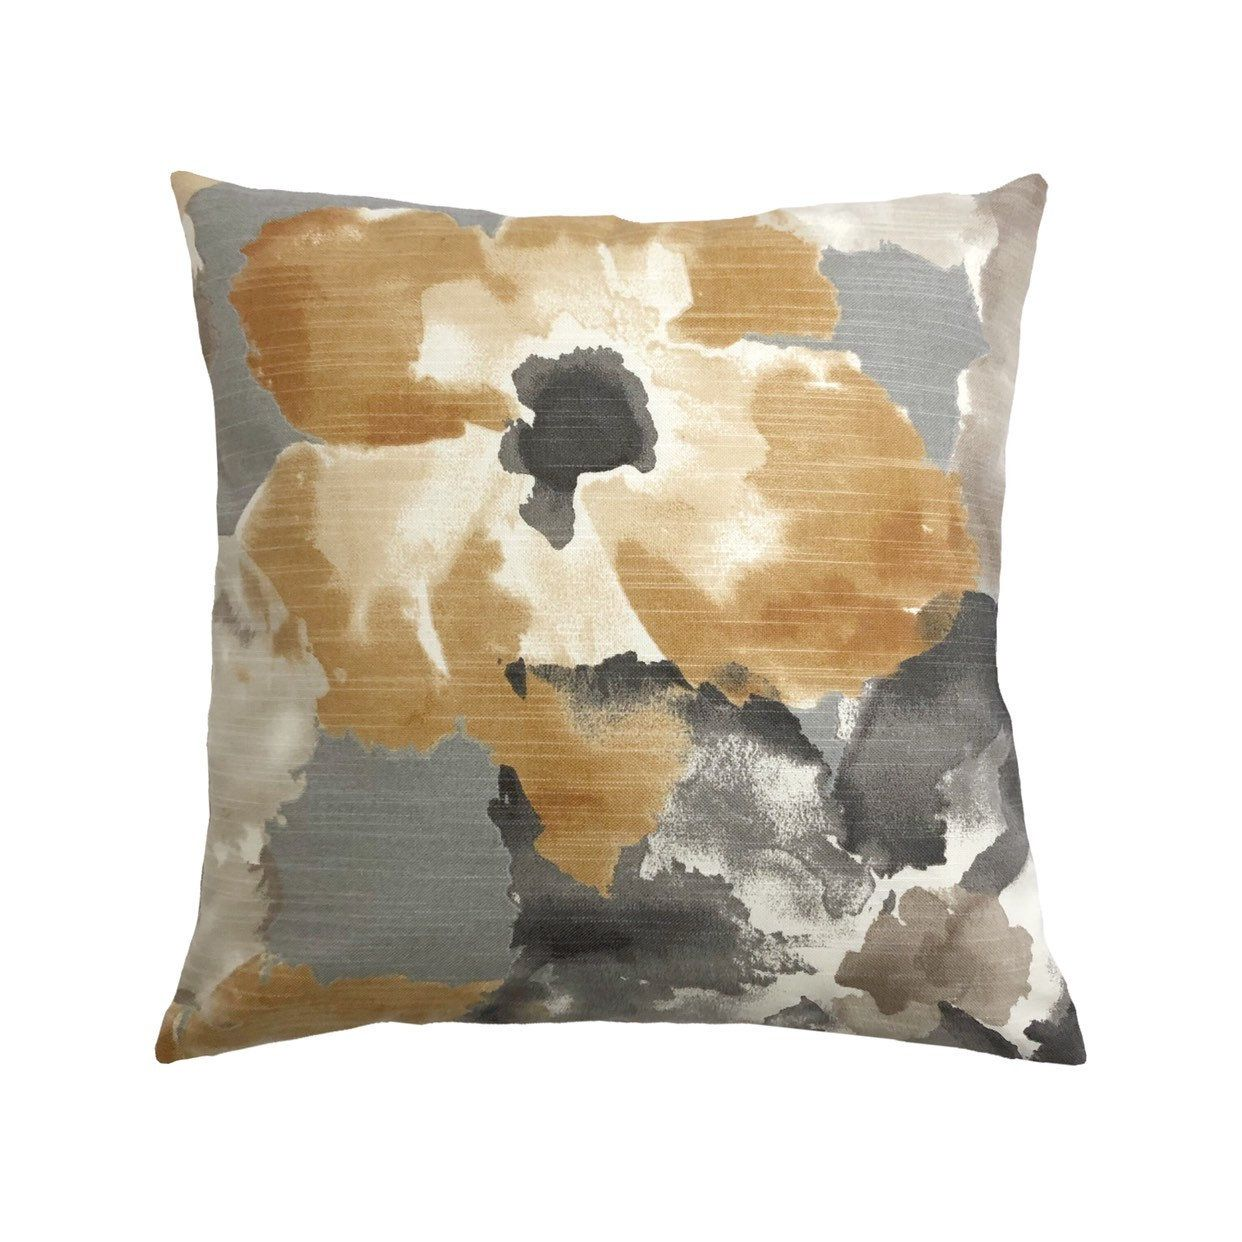 Floral Amber Throw Pillow Cover Grey Cream Golden Tan And Etsy Throw Pillows Throw Pillow Covers Taupe Accent Pillows